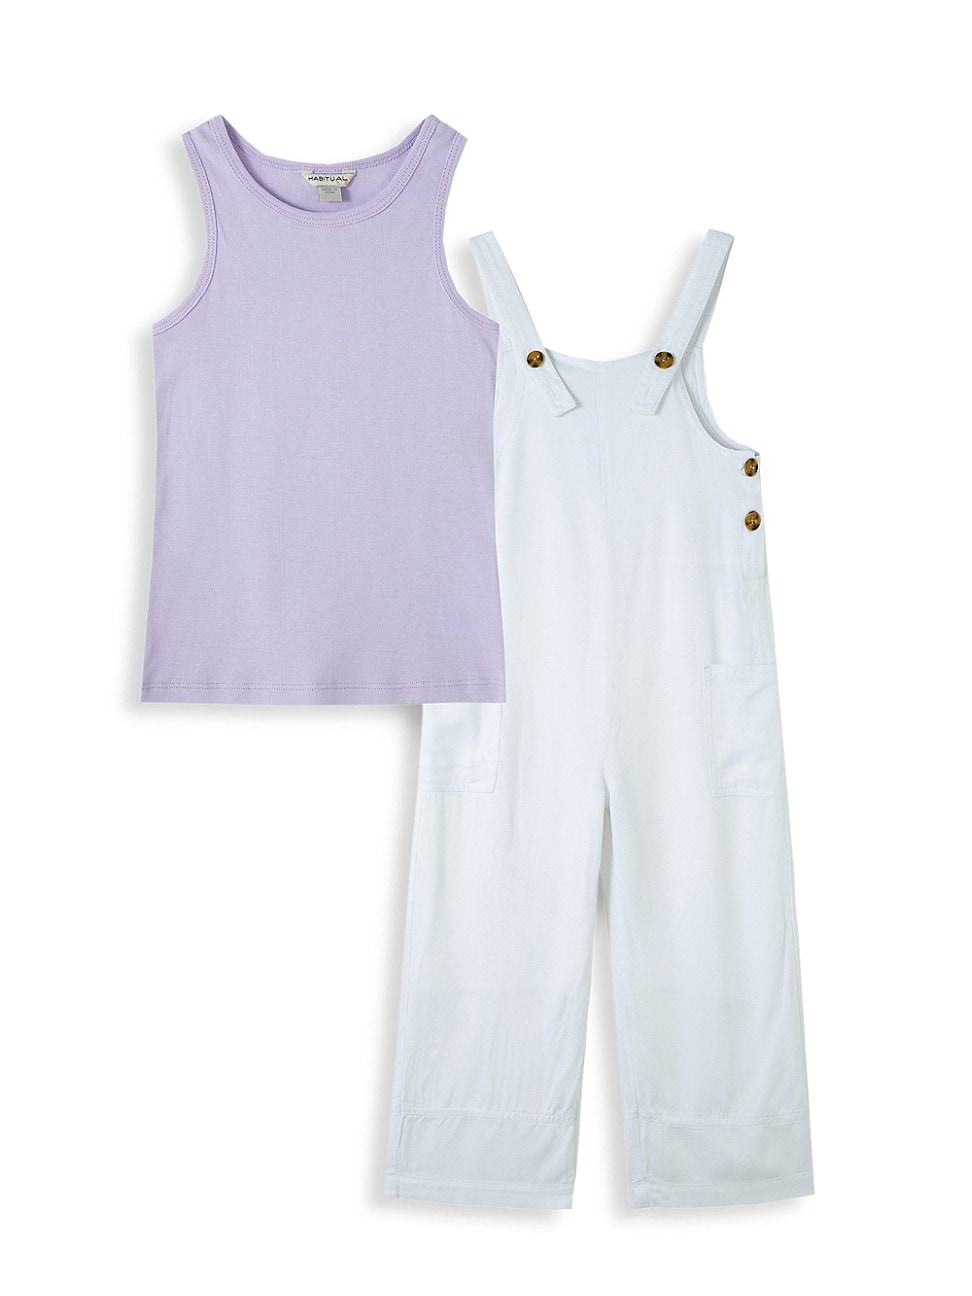 Habitual LITTLE GIRL'S 2-PIECE OVERALL SET